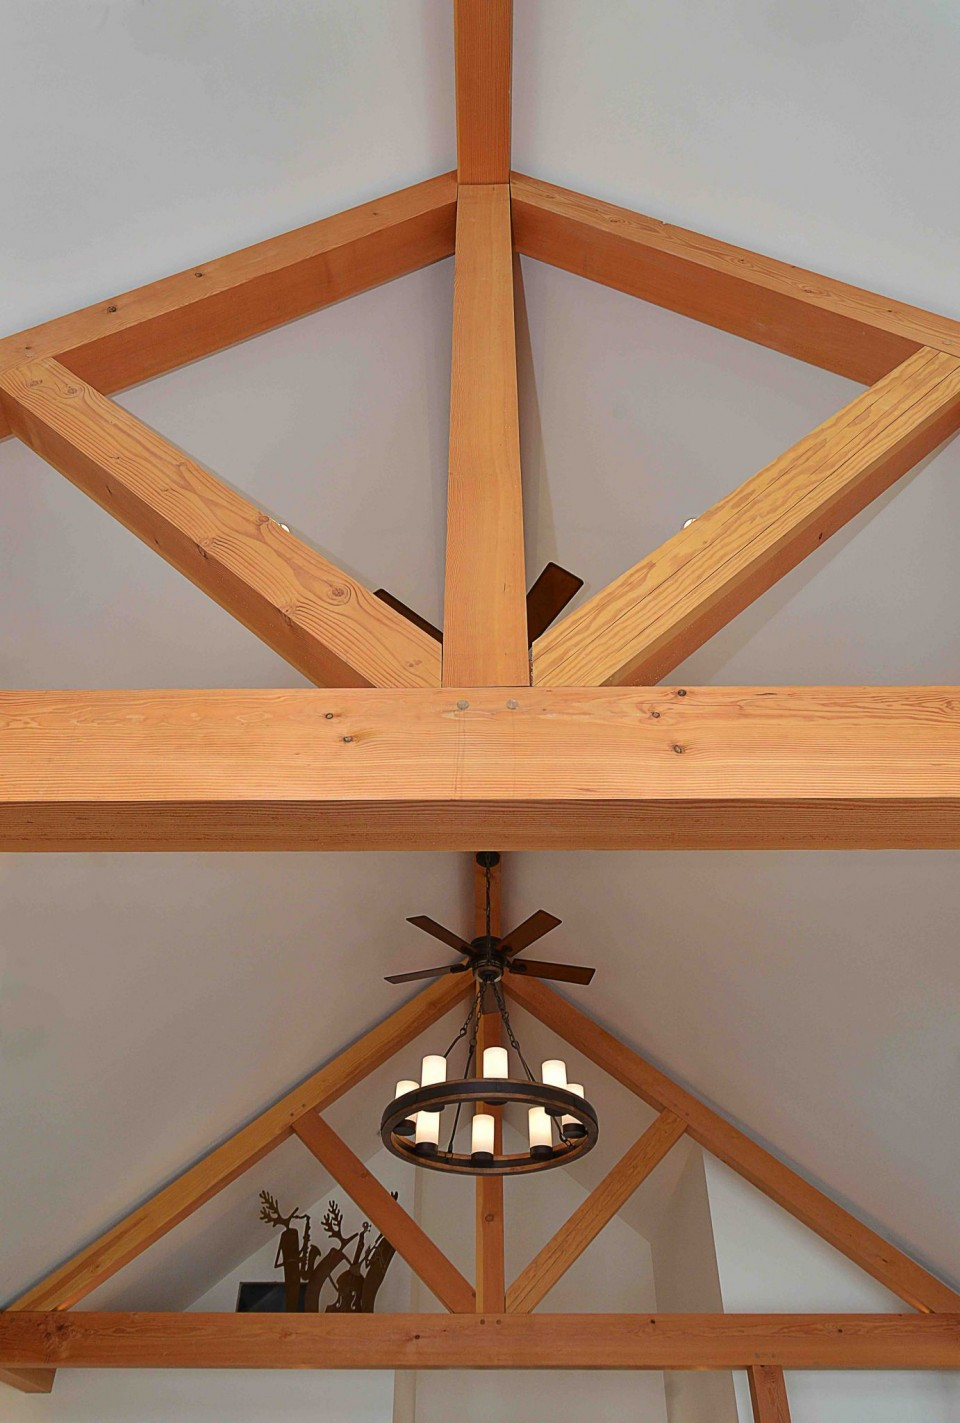 Beam structure inside a timber frame home